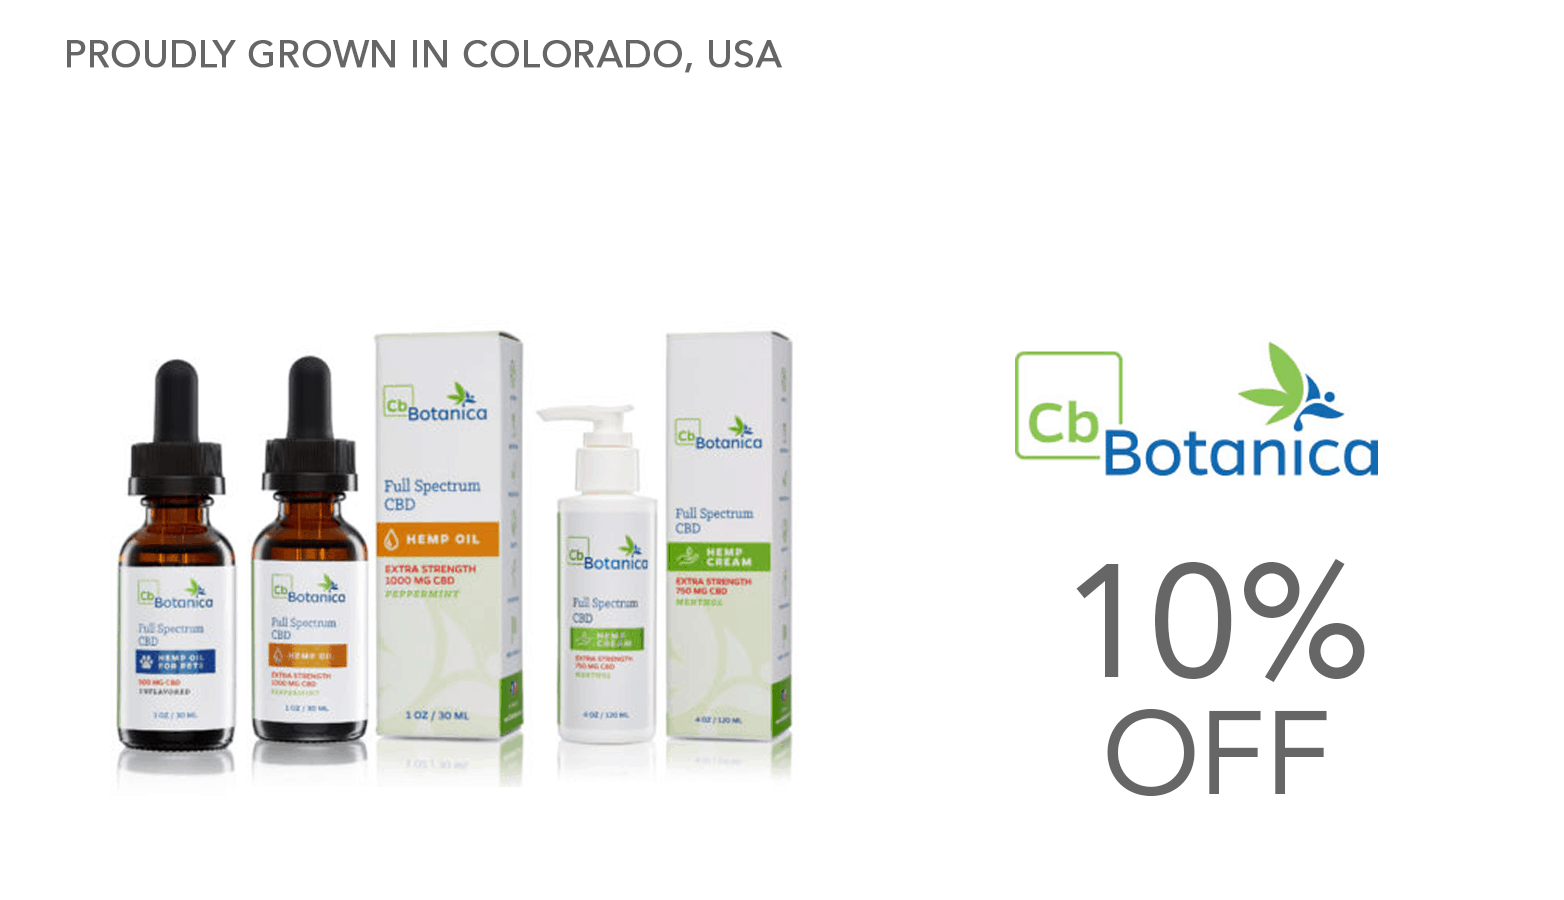 CB Botanica CBD Coupon Code Website